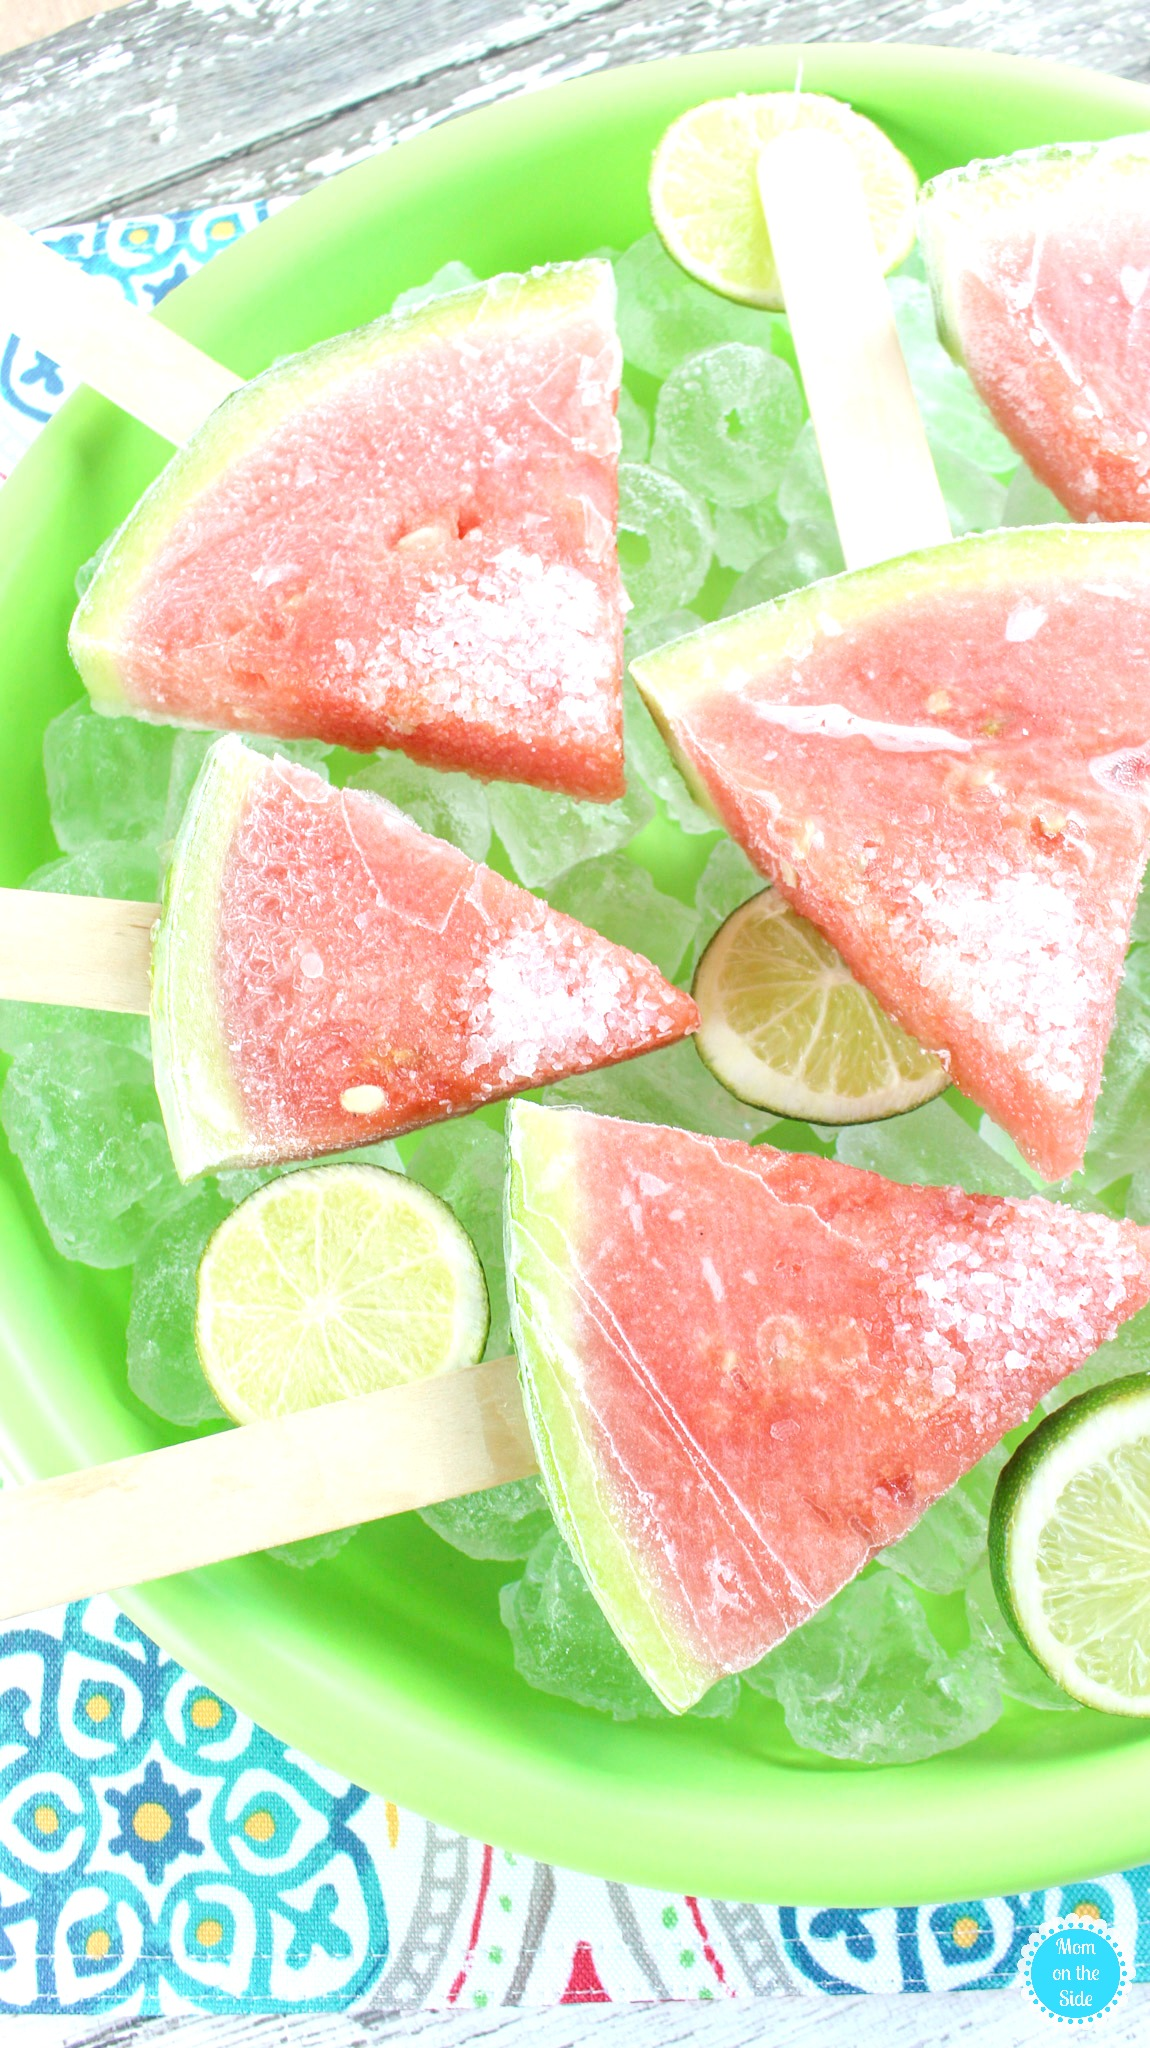 BOOZY WATERMELON POPS - INGREDIENTS6-8 seedless watermelon wedges1 cup sugar3/4 cup boiling water4 Tablespoons lime juice (juice of 2 limes)1/2 cup tequila1/4 cup triple secMargarita Salt (affiliate link)See it here!